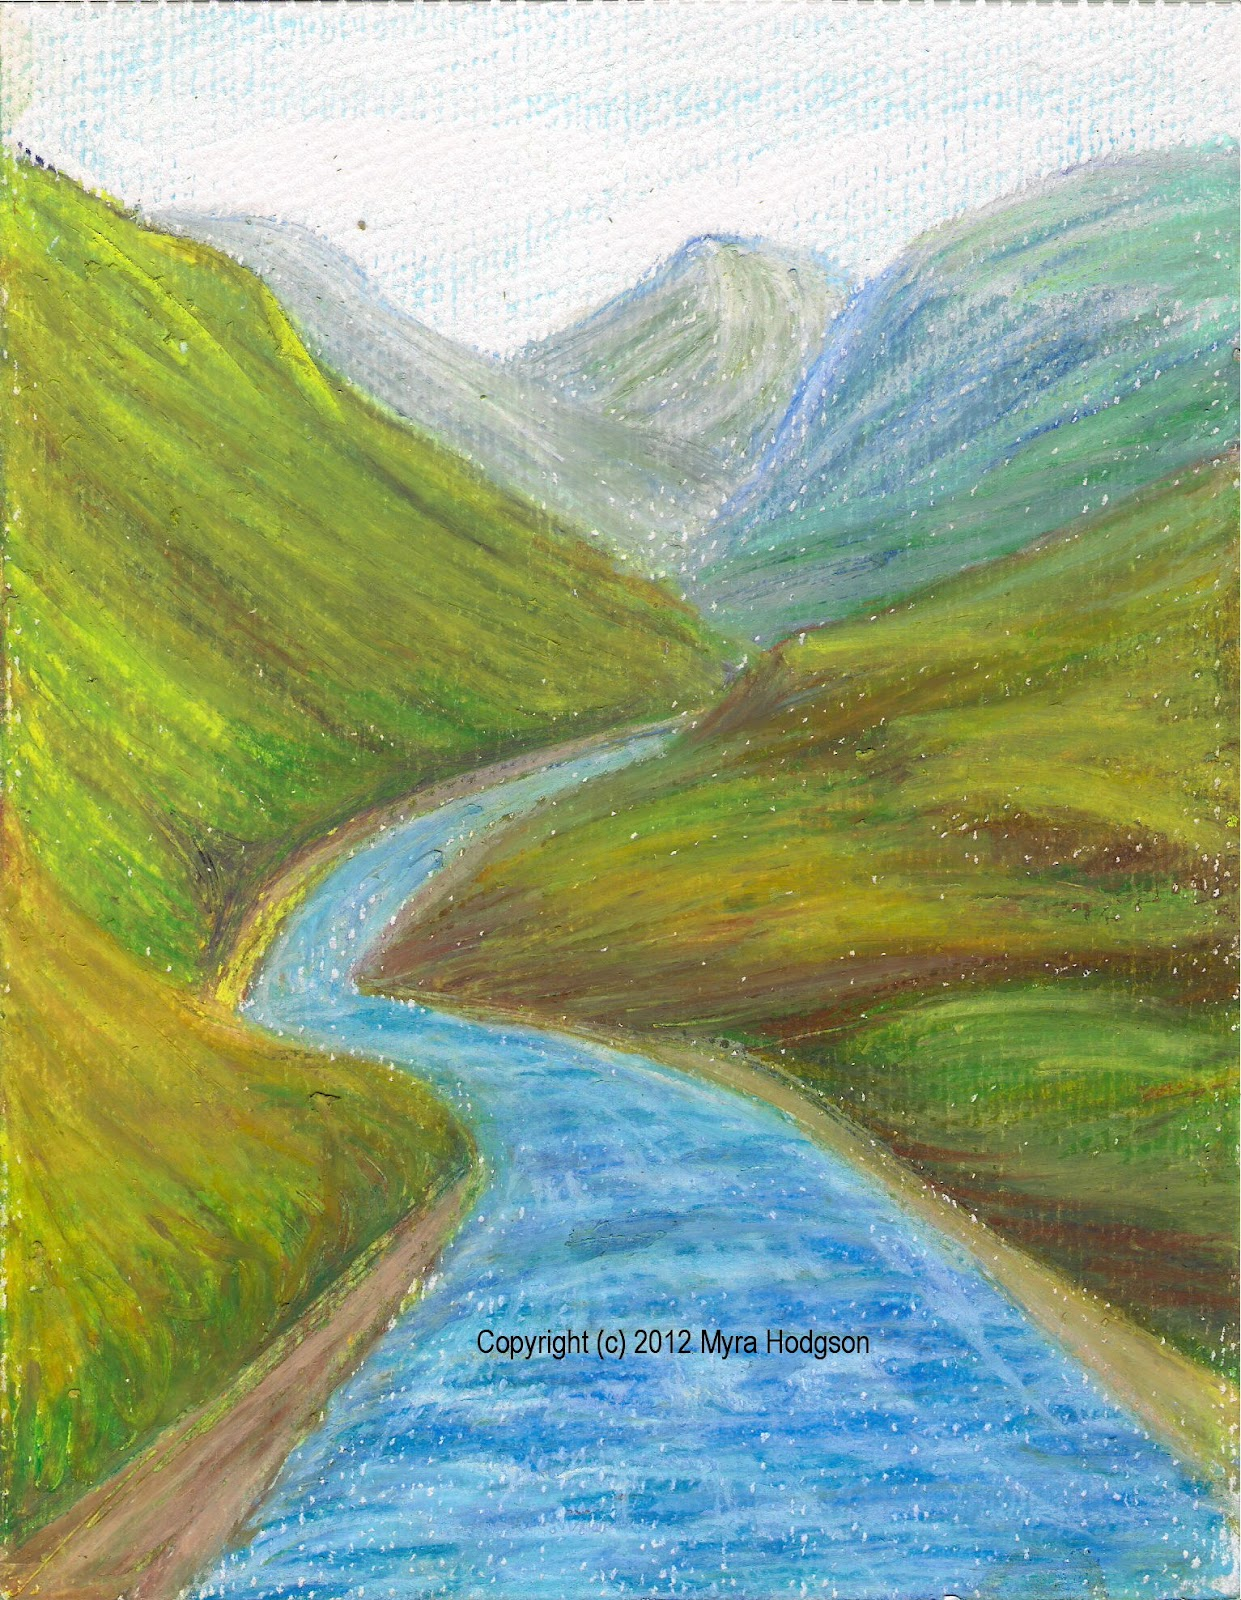 Creating landscape and seascape paintings with oil pastels